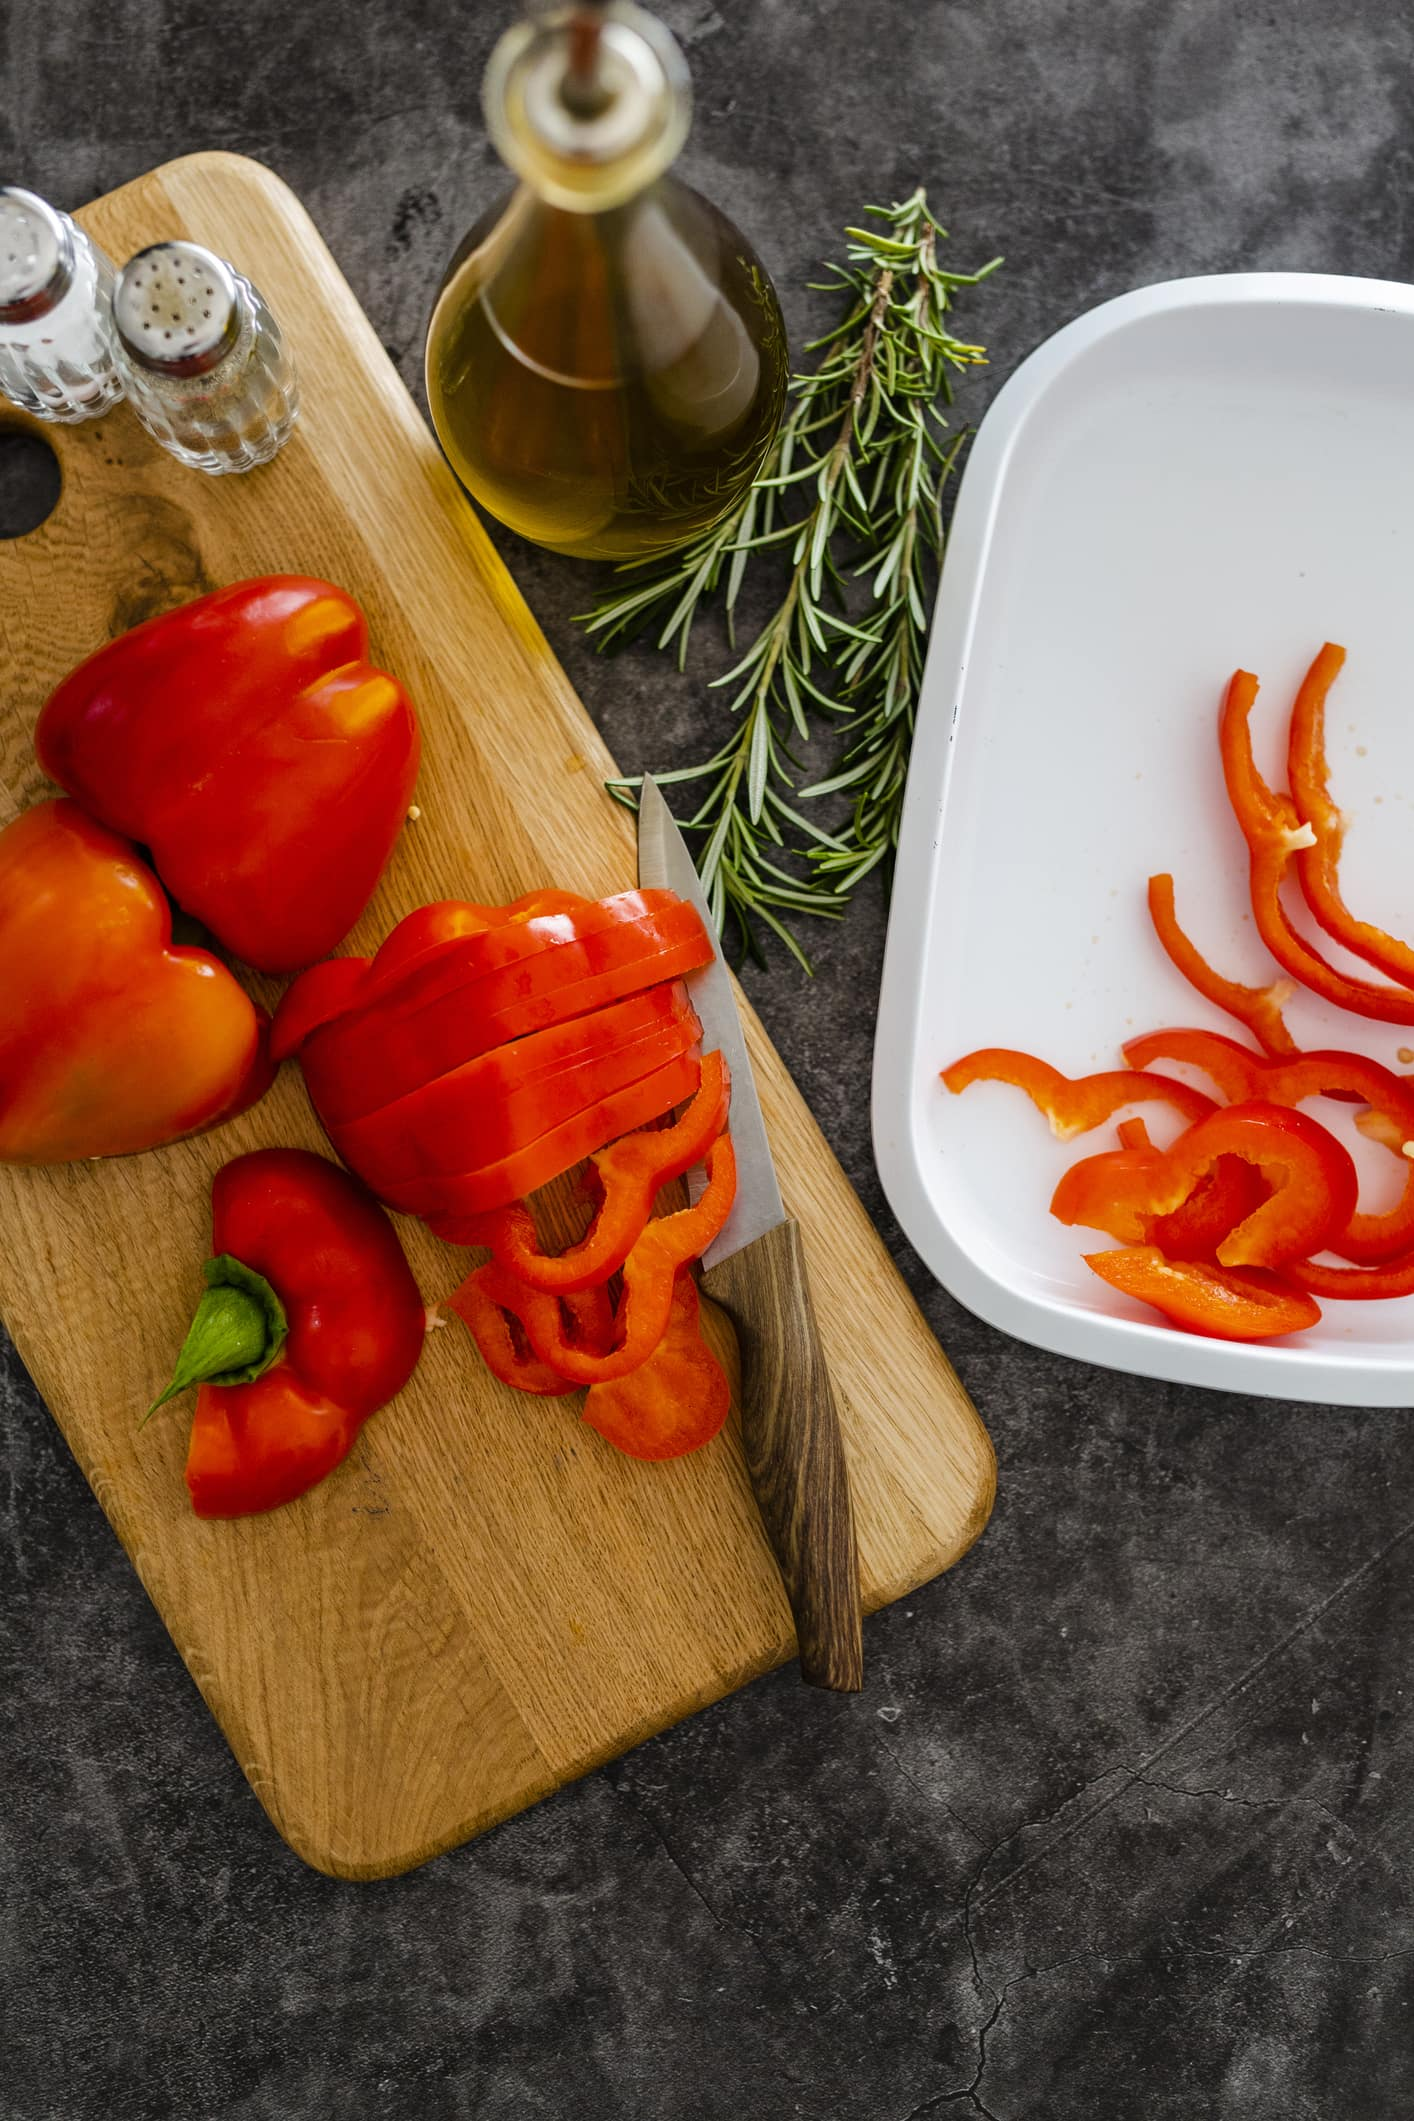 A tray of red bell pepper on a wooden cutting board